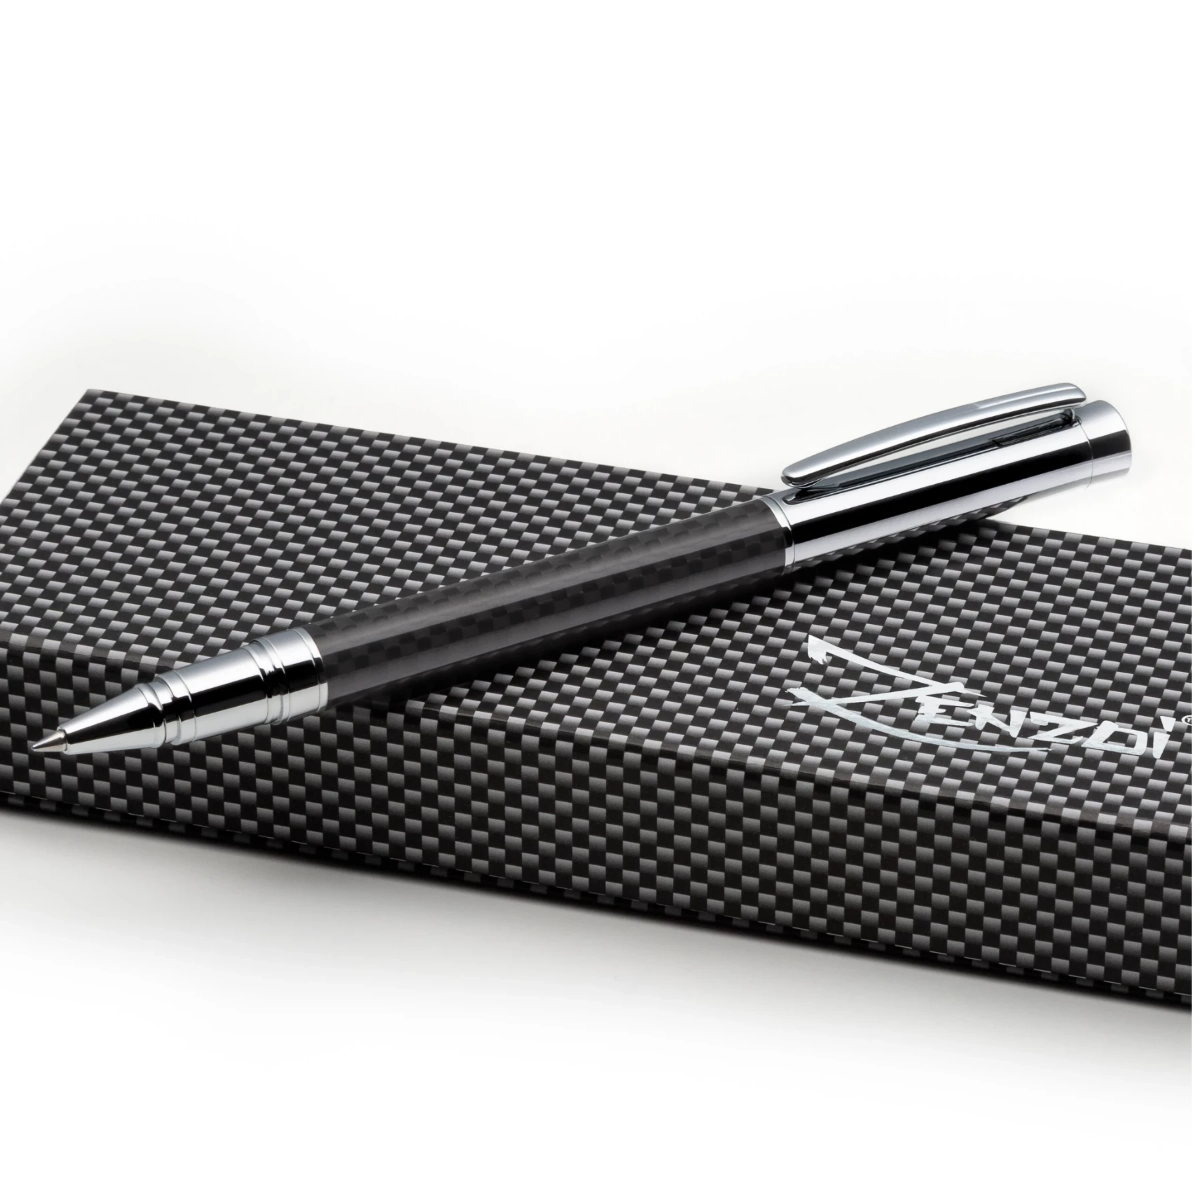 Carbon Fiber Rollerball Pen Set - W/ 0.5mm Schneider Ink Refill & Gift Box Case